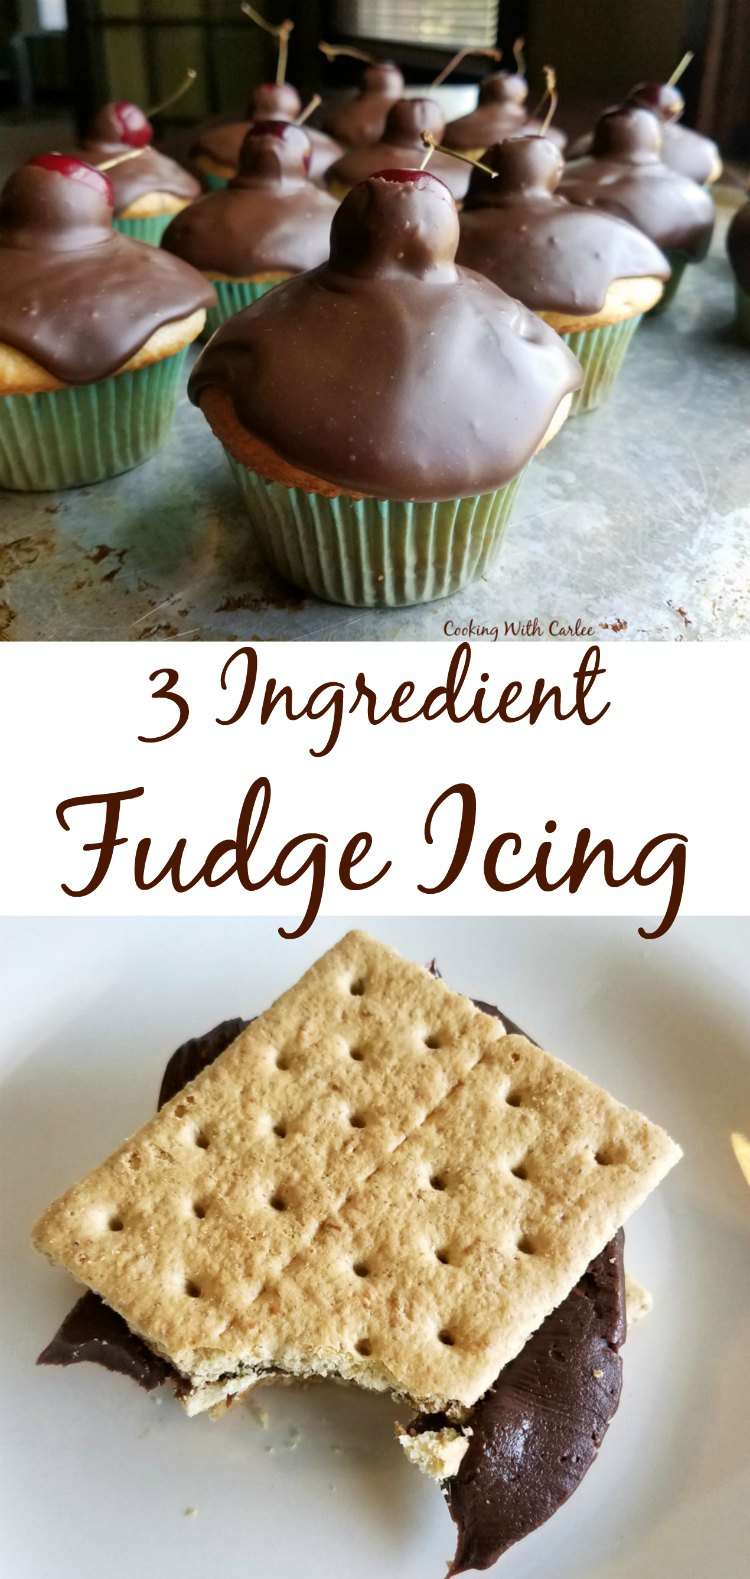 Made quickly in a saucepan and with only three ingredients, this icing is hard to beat! It is so fudgy and has a nice sheen.  Just whisk in a bit of powdered sugar to turn it into a really nice frosting as well!